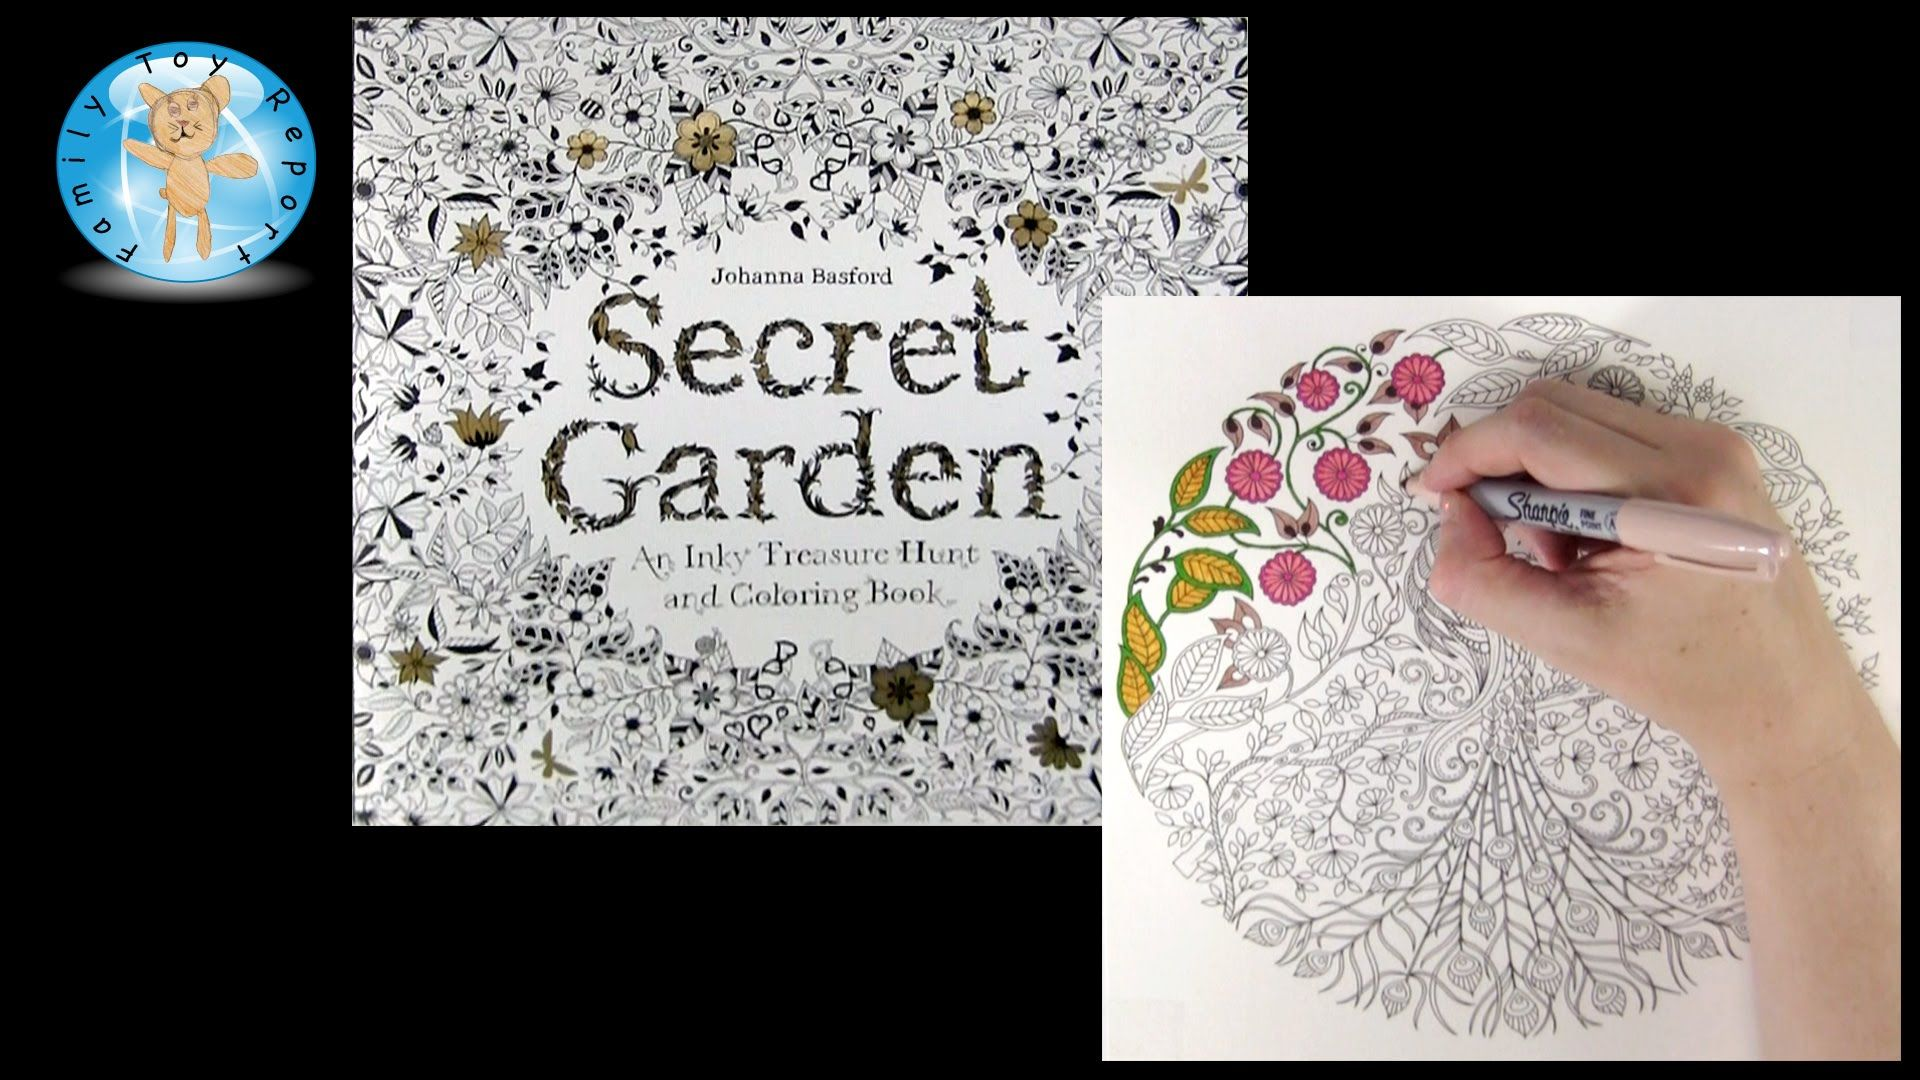 Secret Garden By Johanna Basford Adult Coloring Book Review Peacock